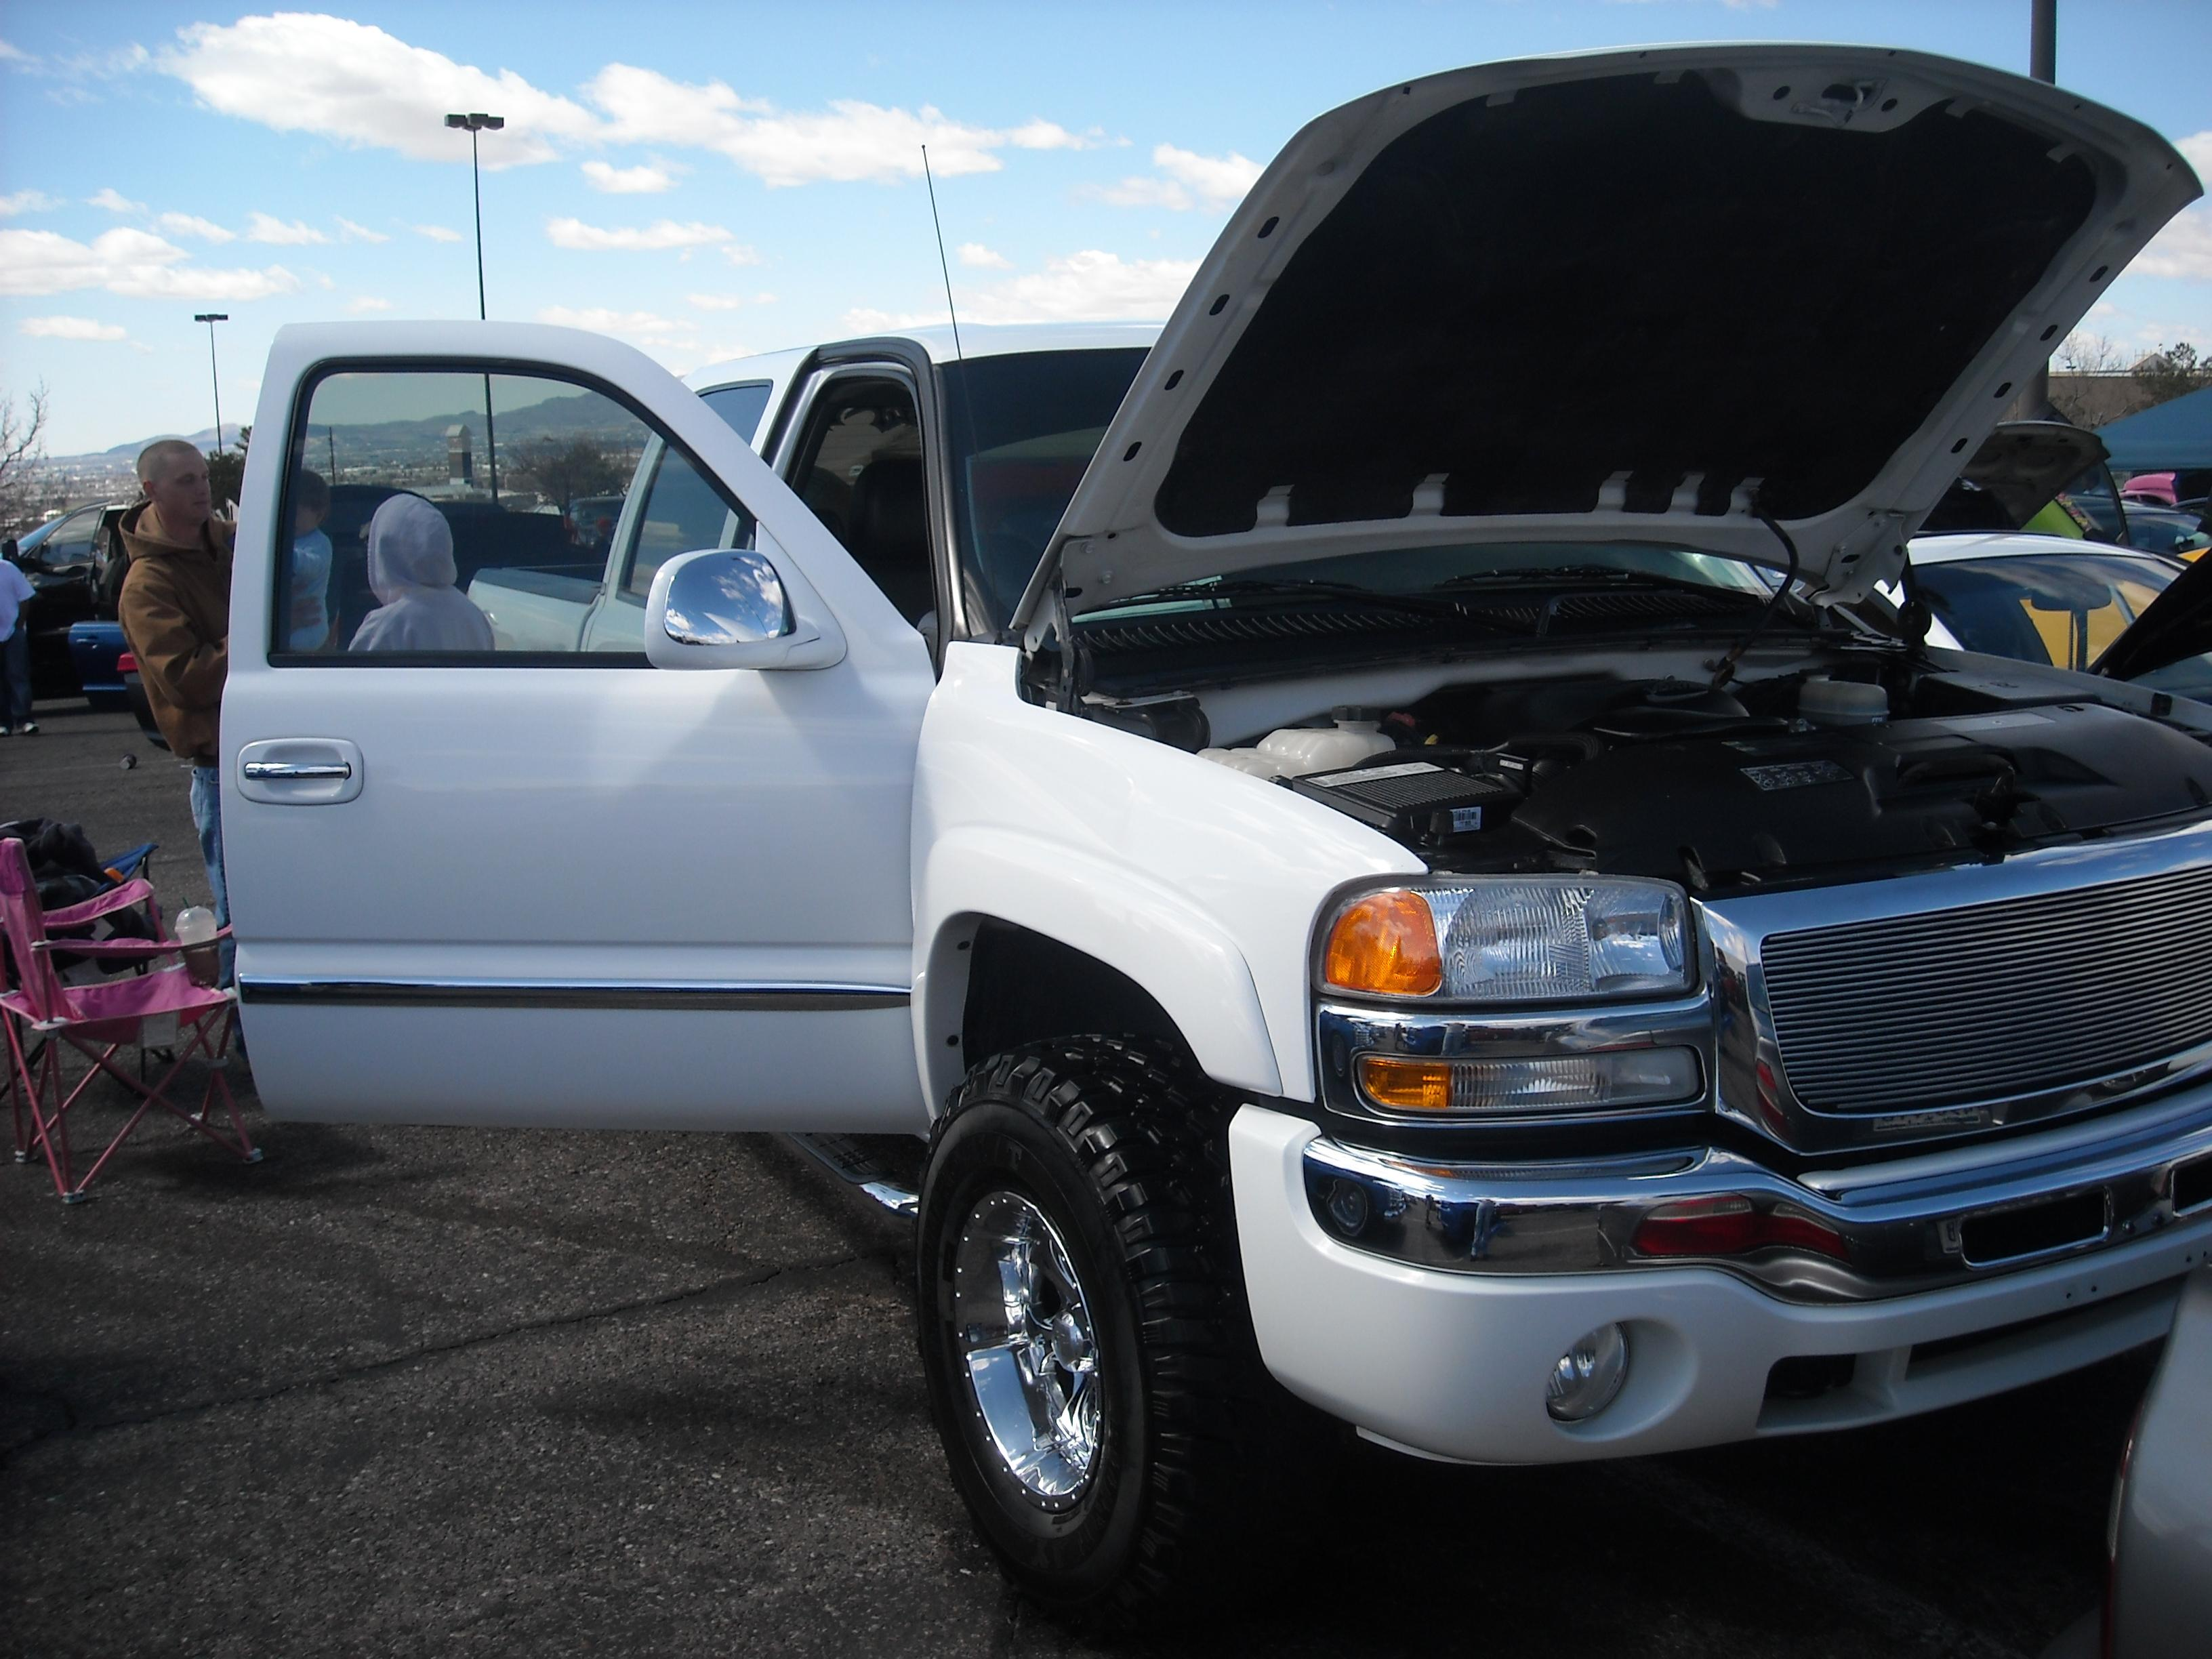 pauls07 2005 gmc sierra classic 1500 crew cab specs photos modification info at cardomain. Black Bedroom Furniture Sets. Home Design Ideas